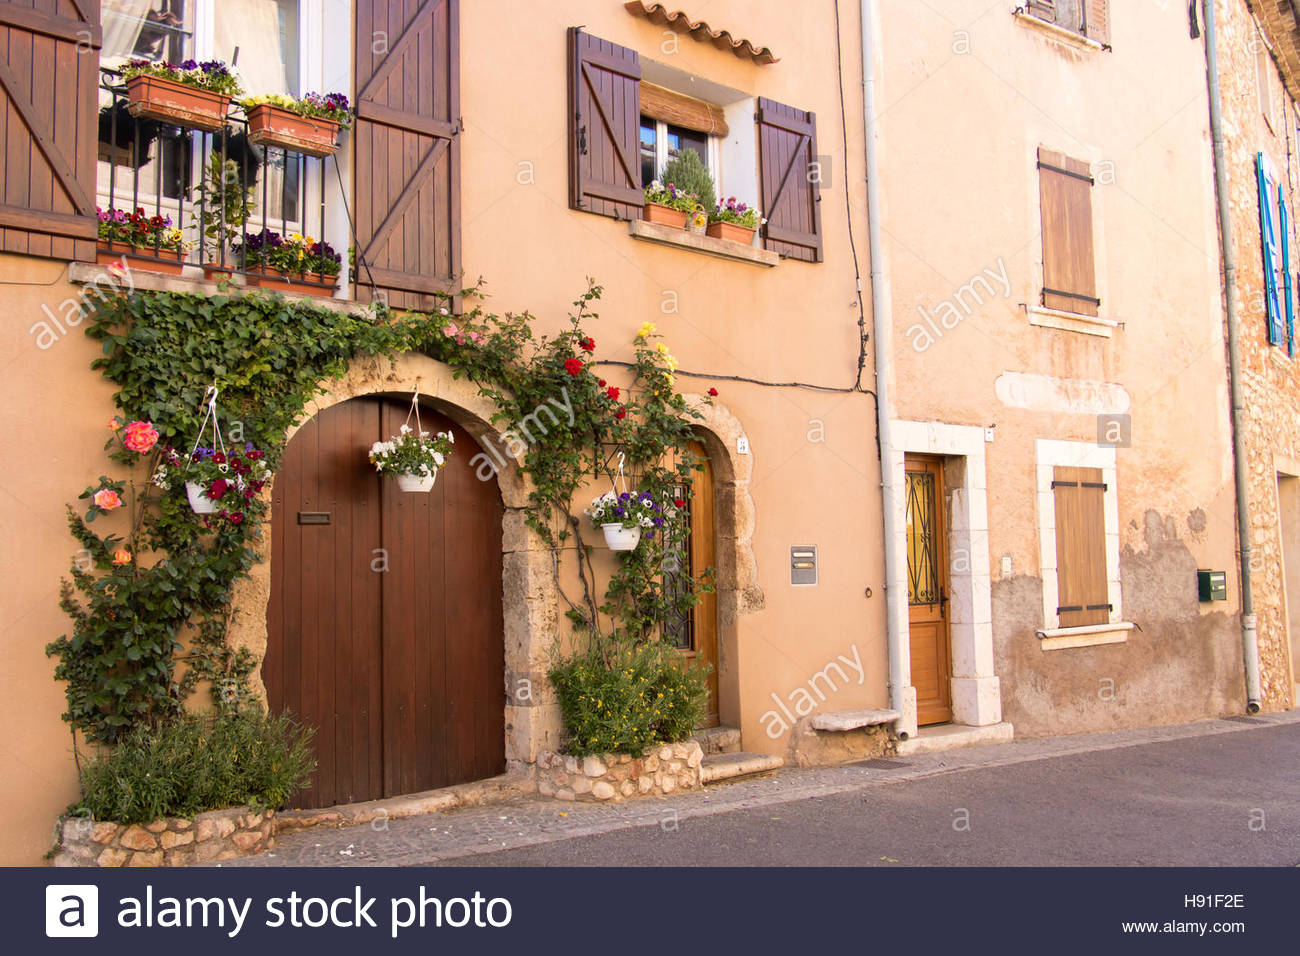 Medieval Village of Régusse, Var Provence-Alpes-Côte d'Azur, France, old architecture, narrow streets, - Stock Image